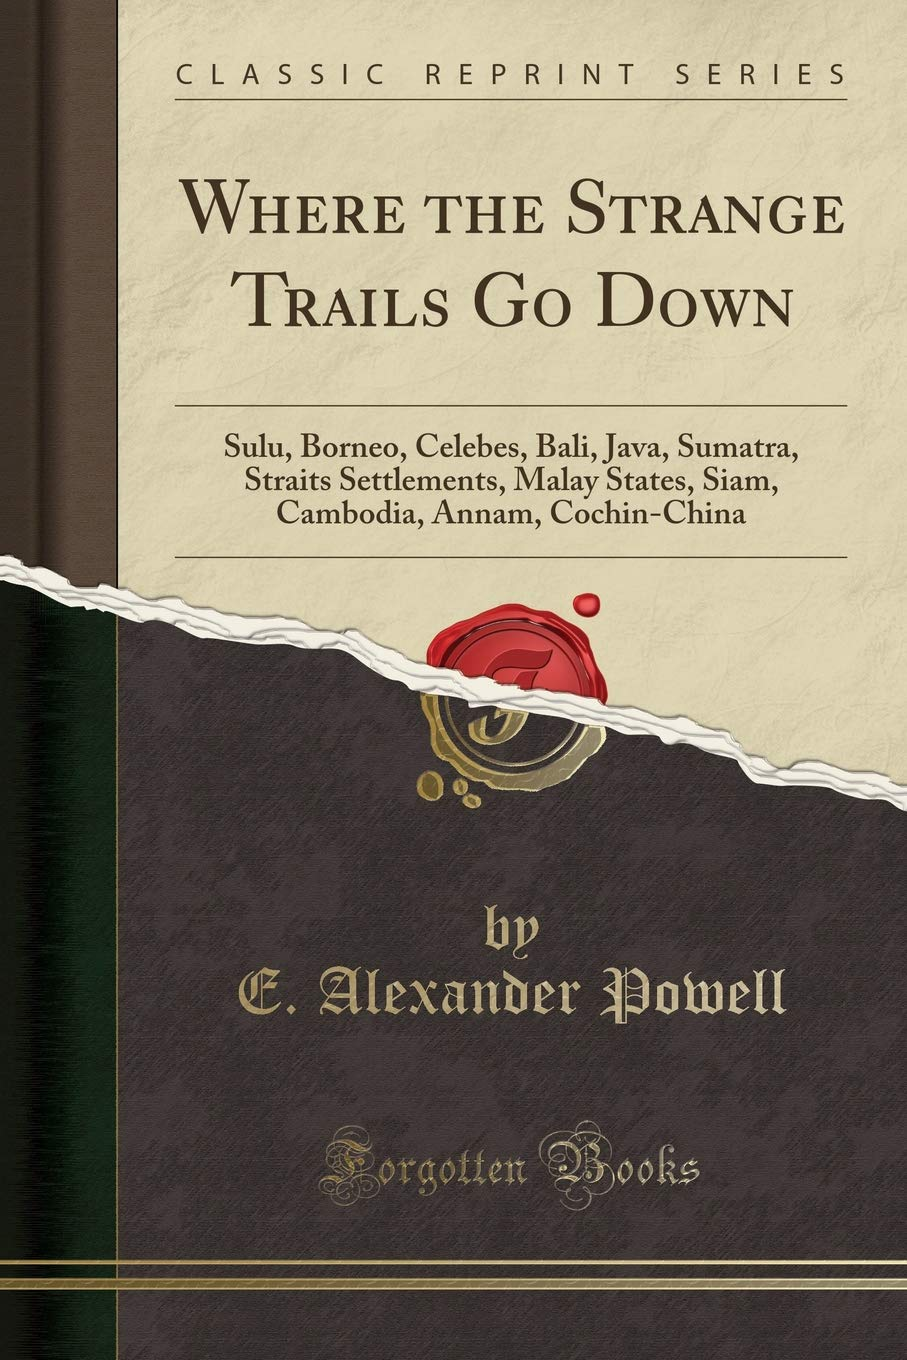 Download Where the Strange Trails Go Down: Sulu, Borneo, Celebes, Bali, Java, Sumatra, Straits Settlements, Malay States, Siam, Cambodia, Annam, Cochin-China (Classic Reprint) ebook